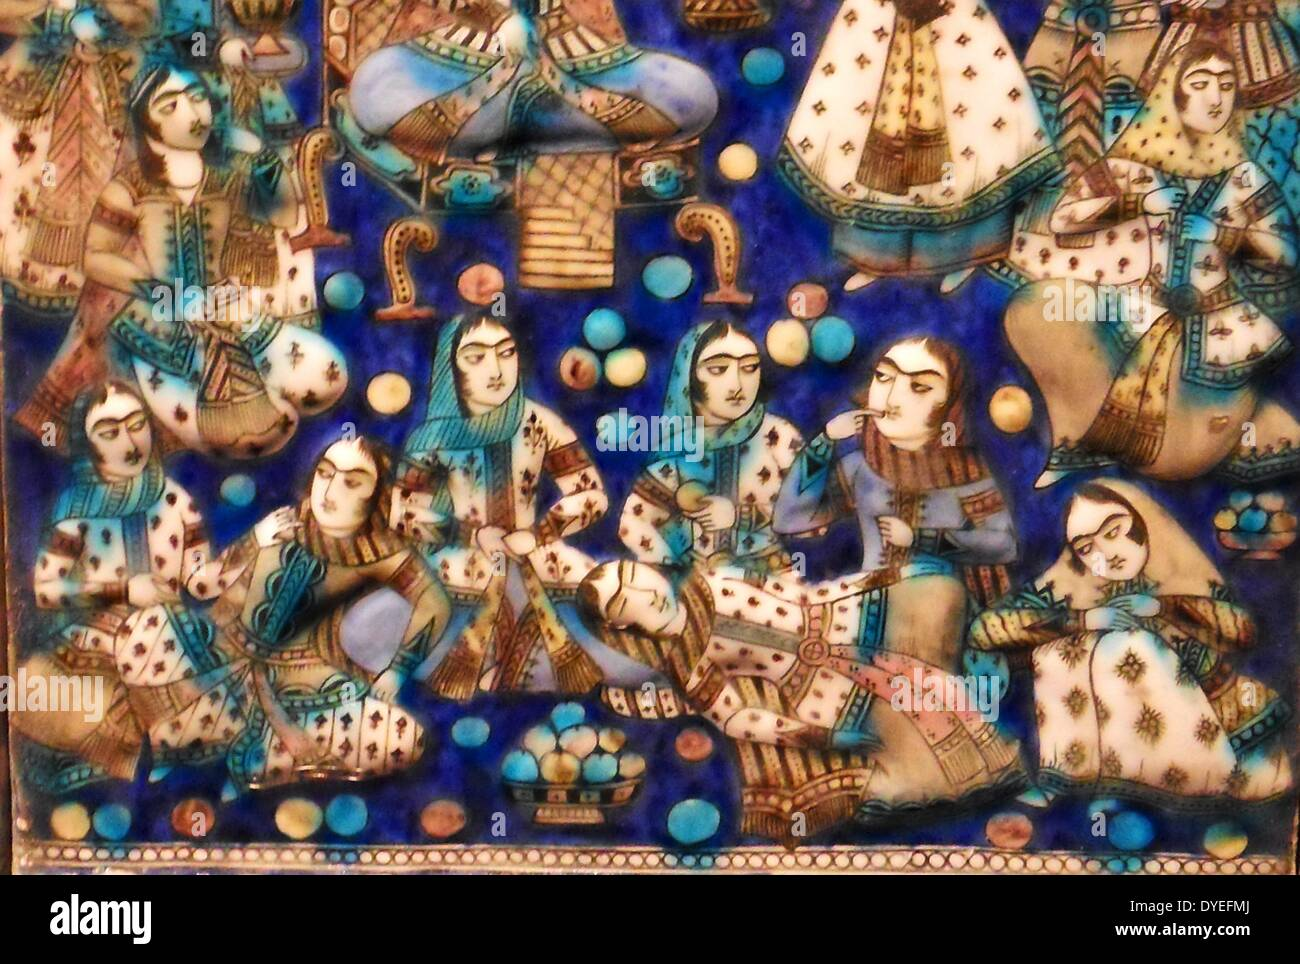 Decorative Tiles from Iran 1876 A.D. - Stock Image